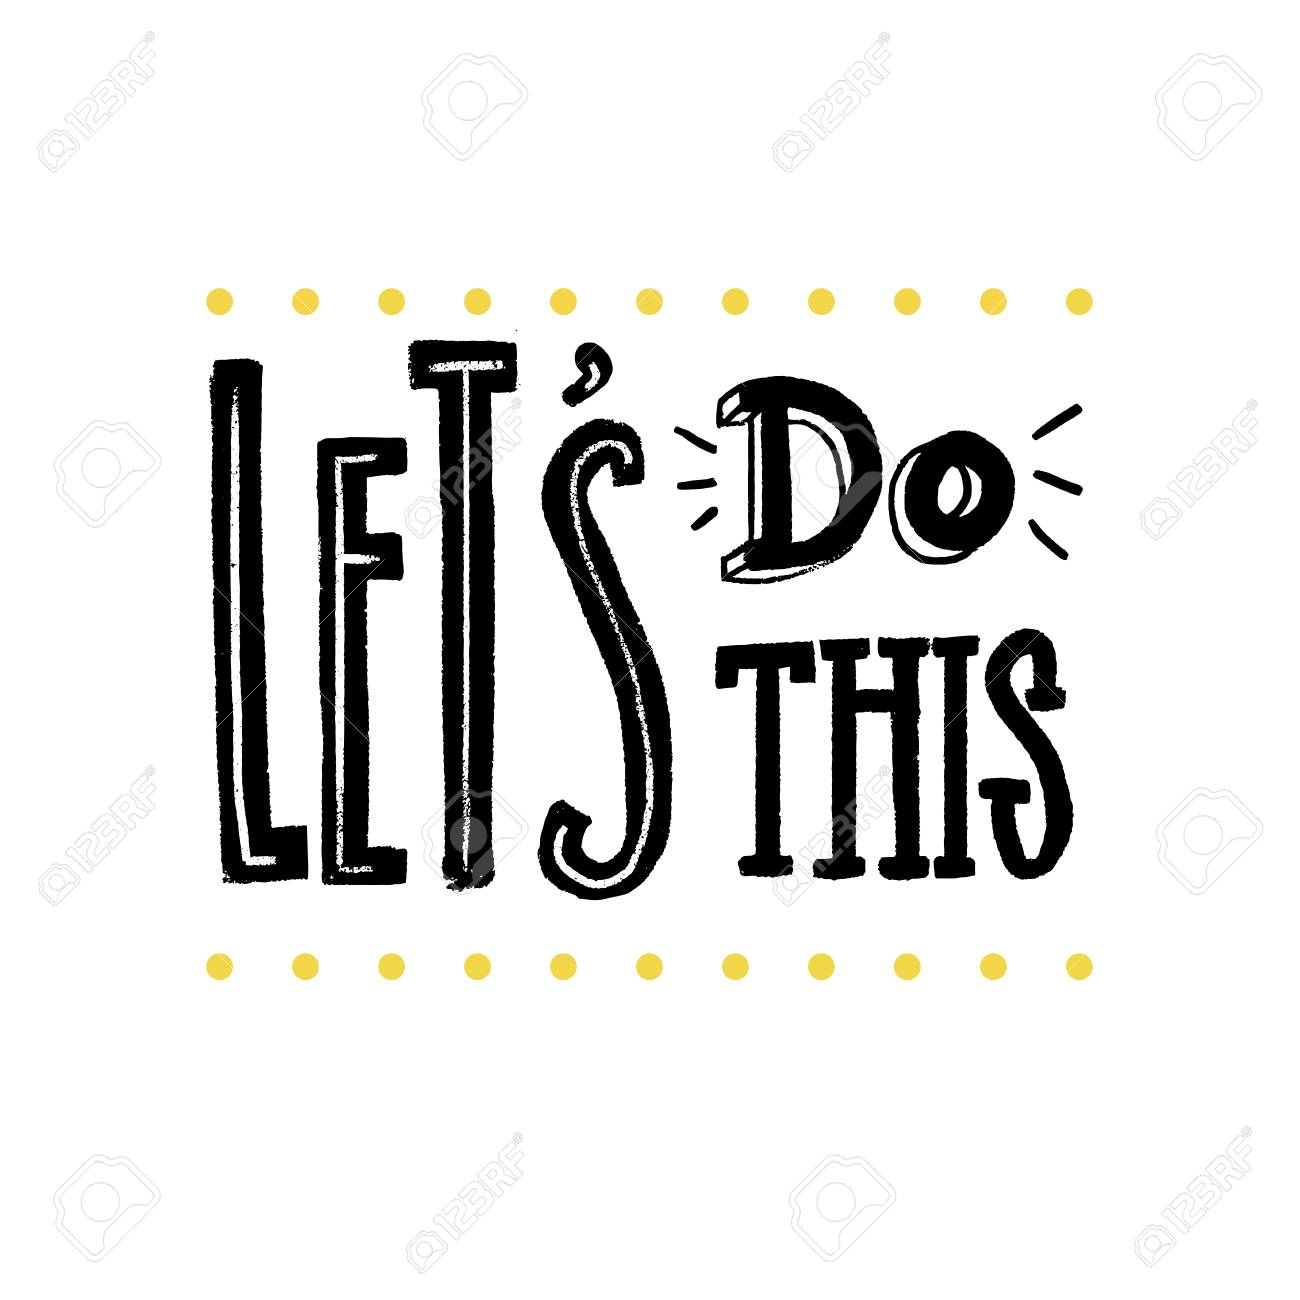 Let's do this. Motivational saying for posters and cards. Positive slogan for office and gym. Black handmade lettering on white background - 94340027